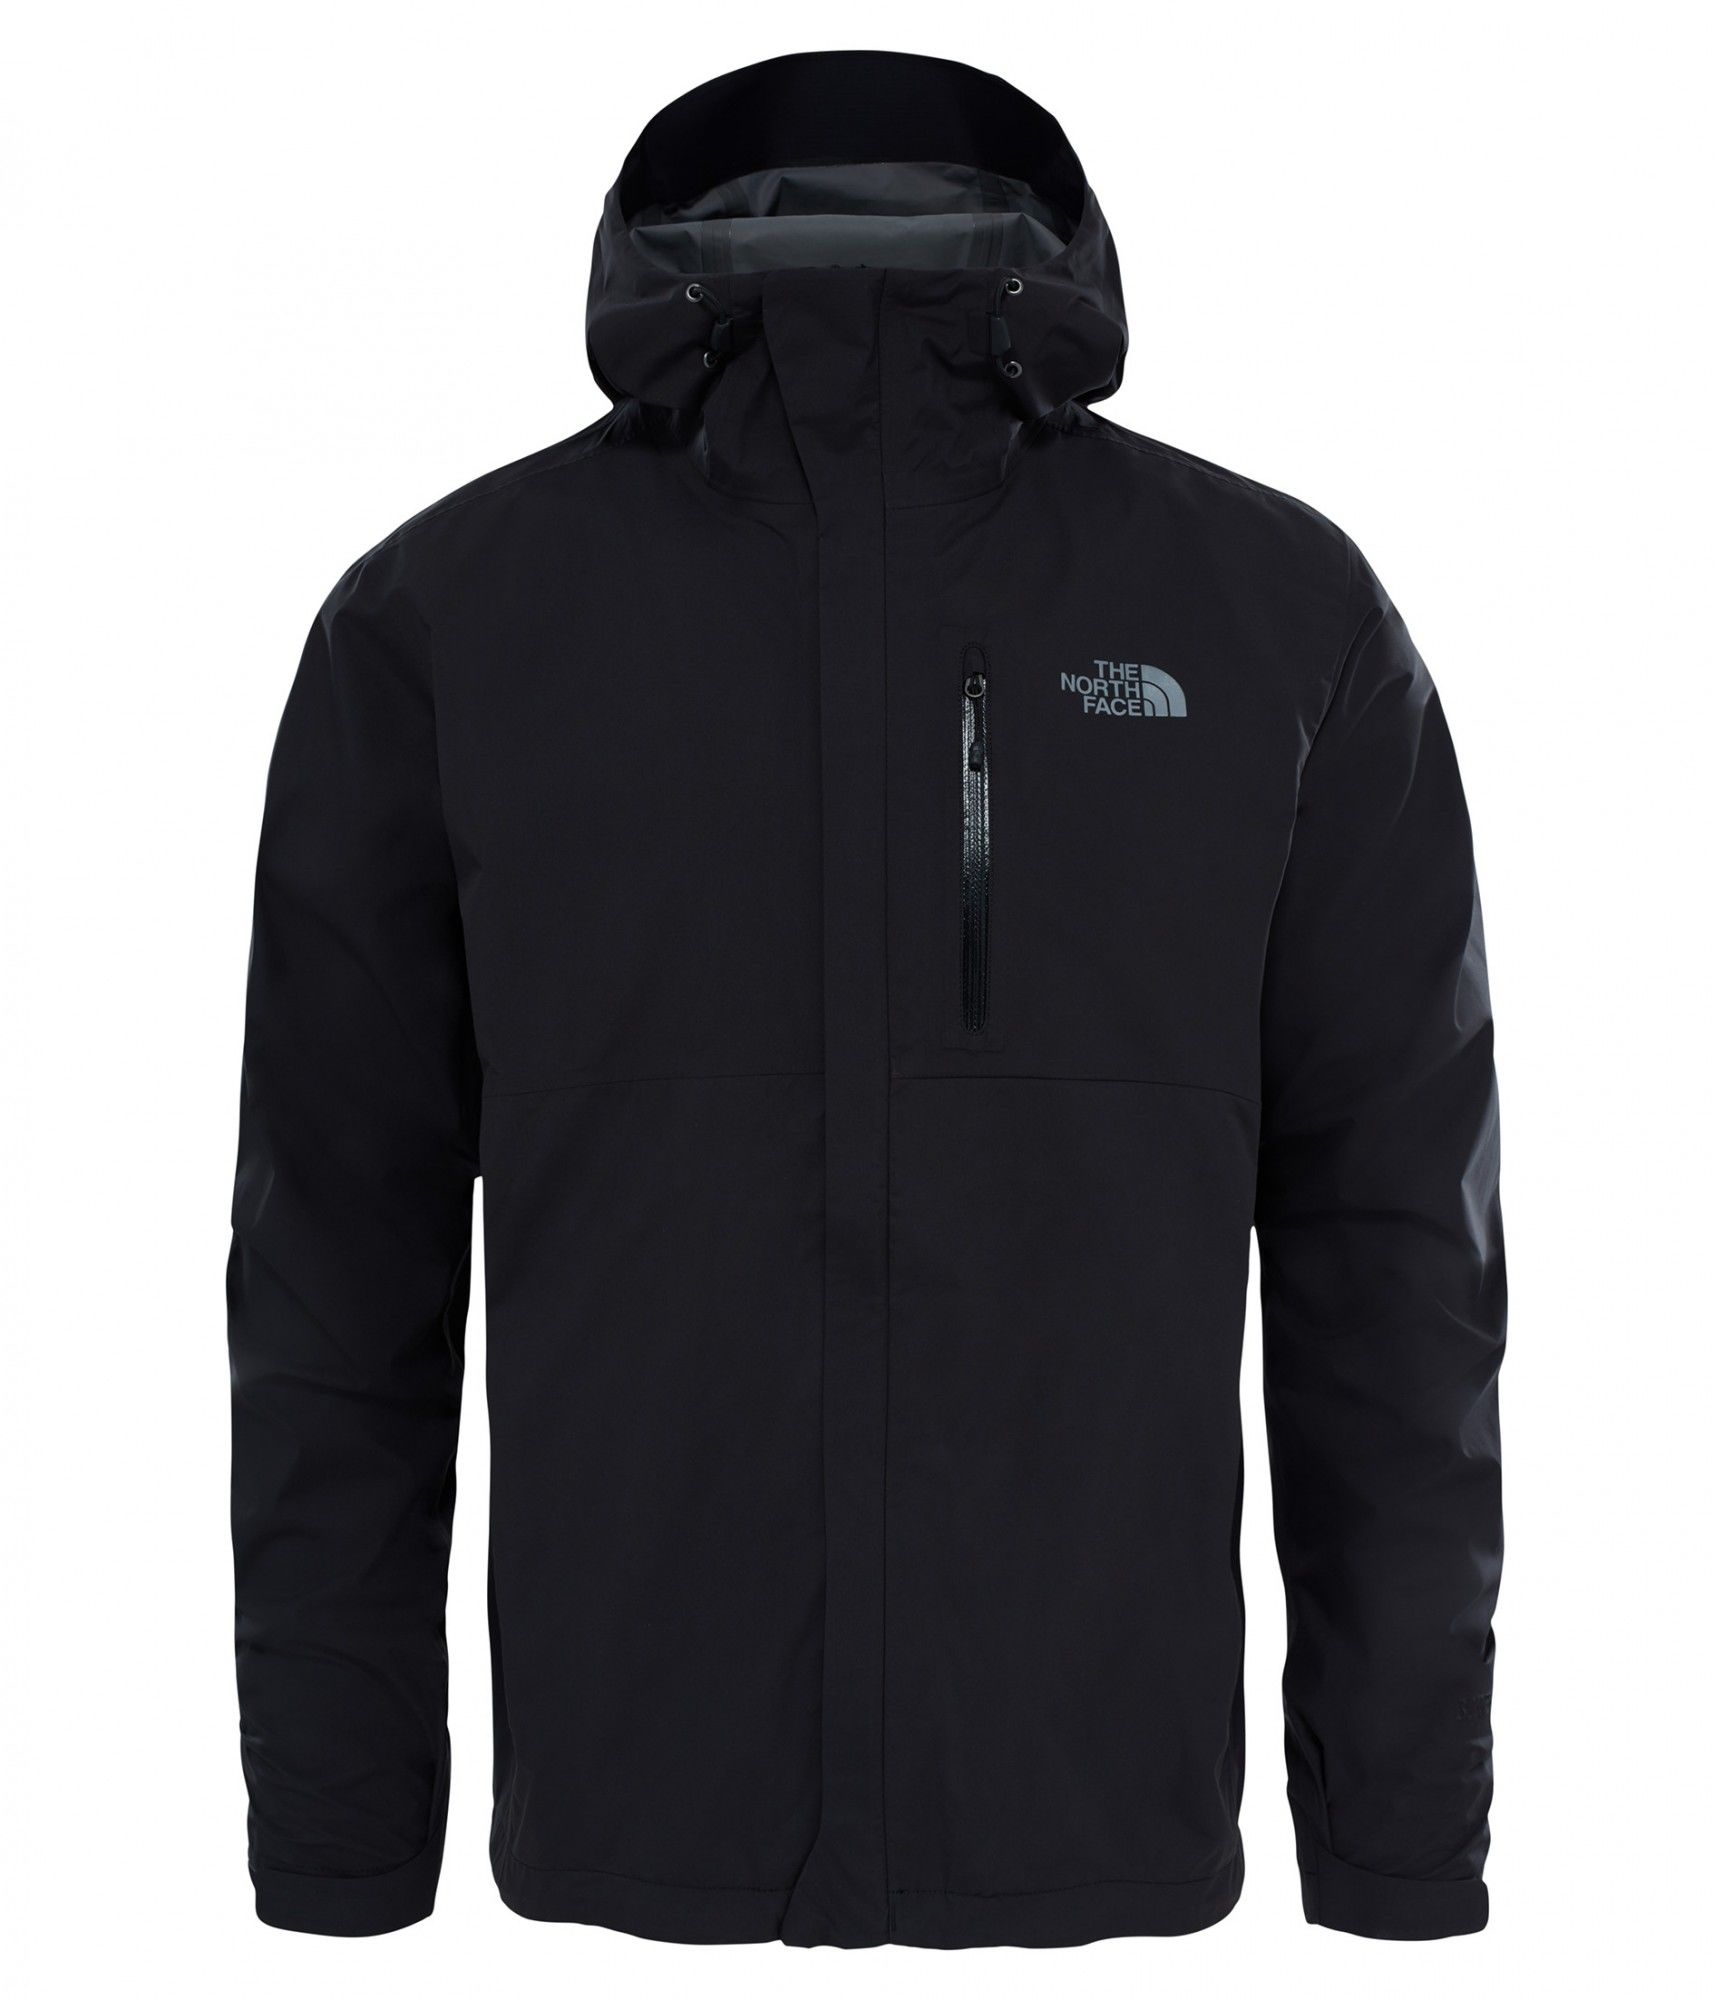 The North Face Dryzzle Jacket Schwarz, Male Gore-Tex® Regenjacke & Hardshells,